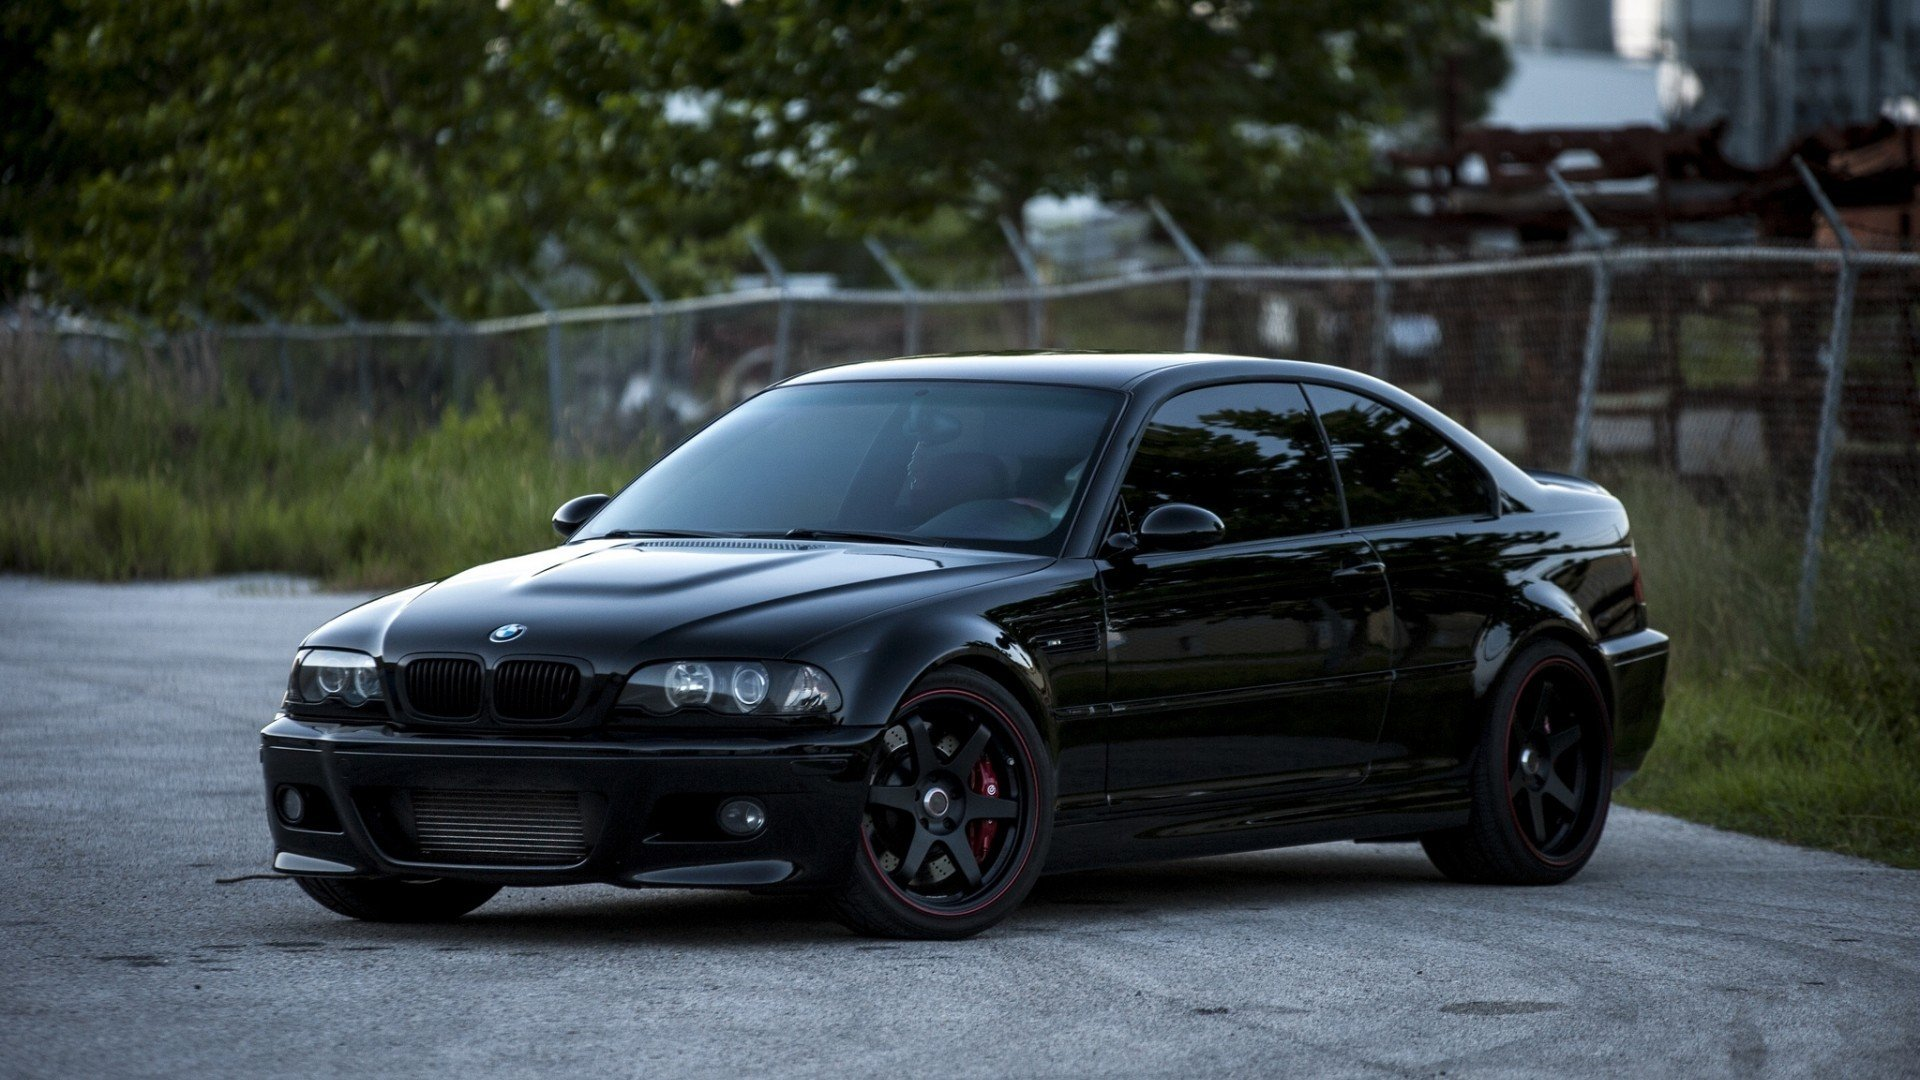 bmw m3 wallpapers, pictures, images